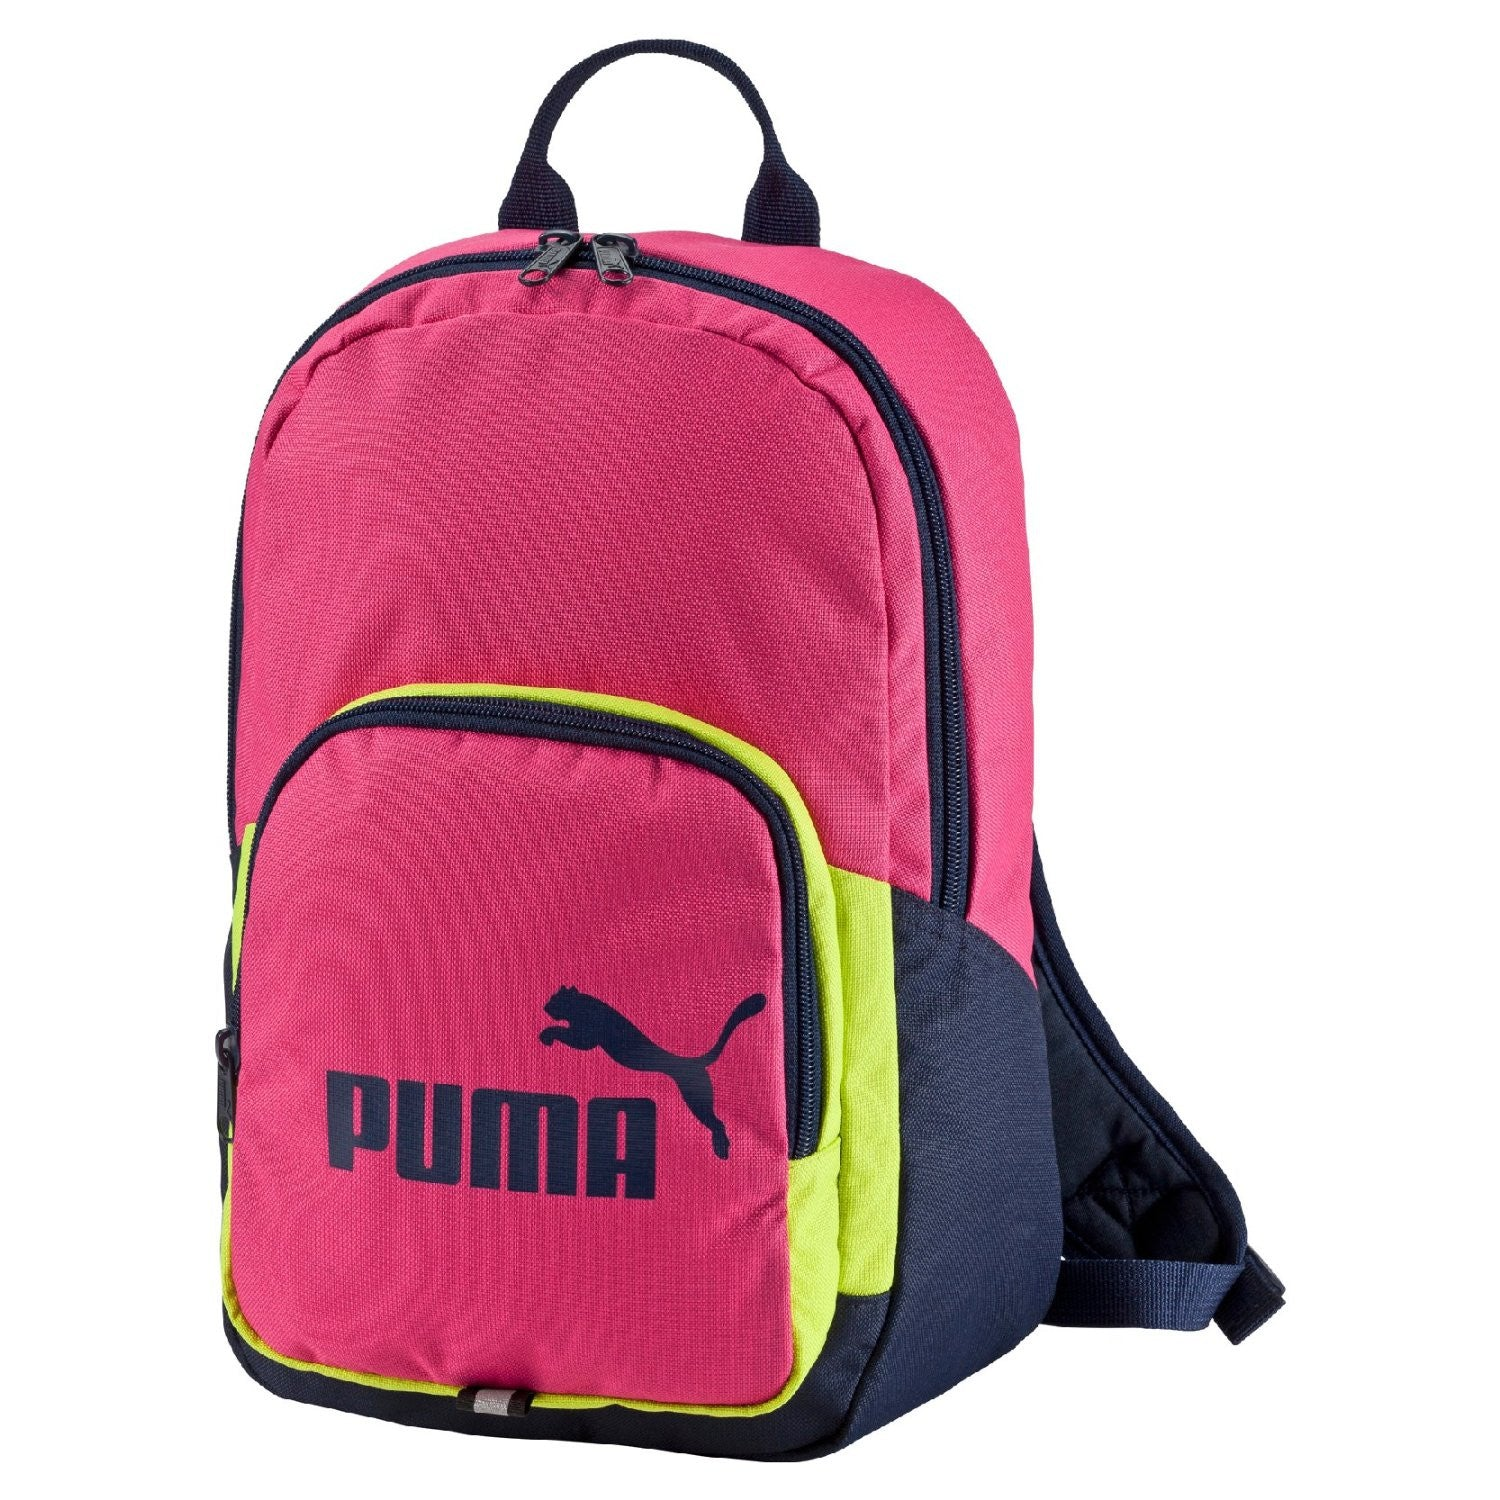 2edd5006d1 Puma Kids School Phase Backpack (Pink Purple) Boys Girls - Top brand shoes